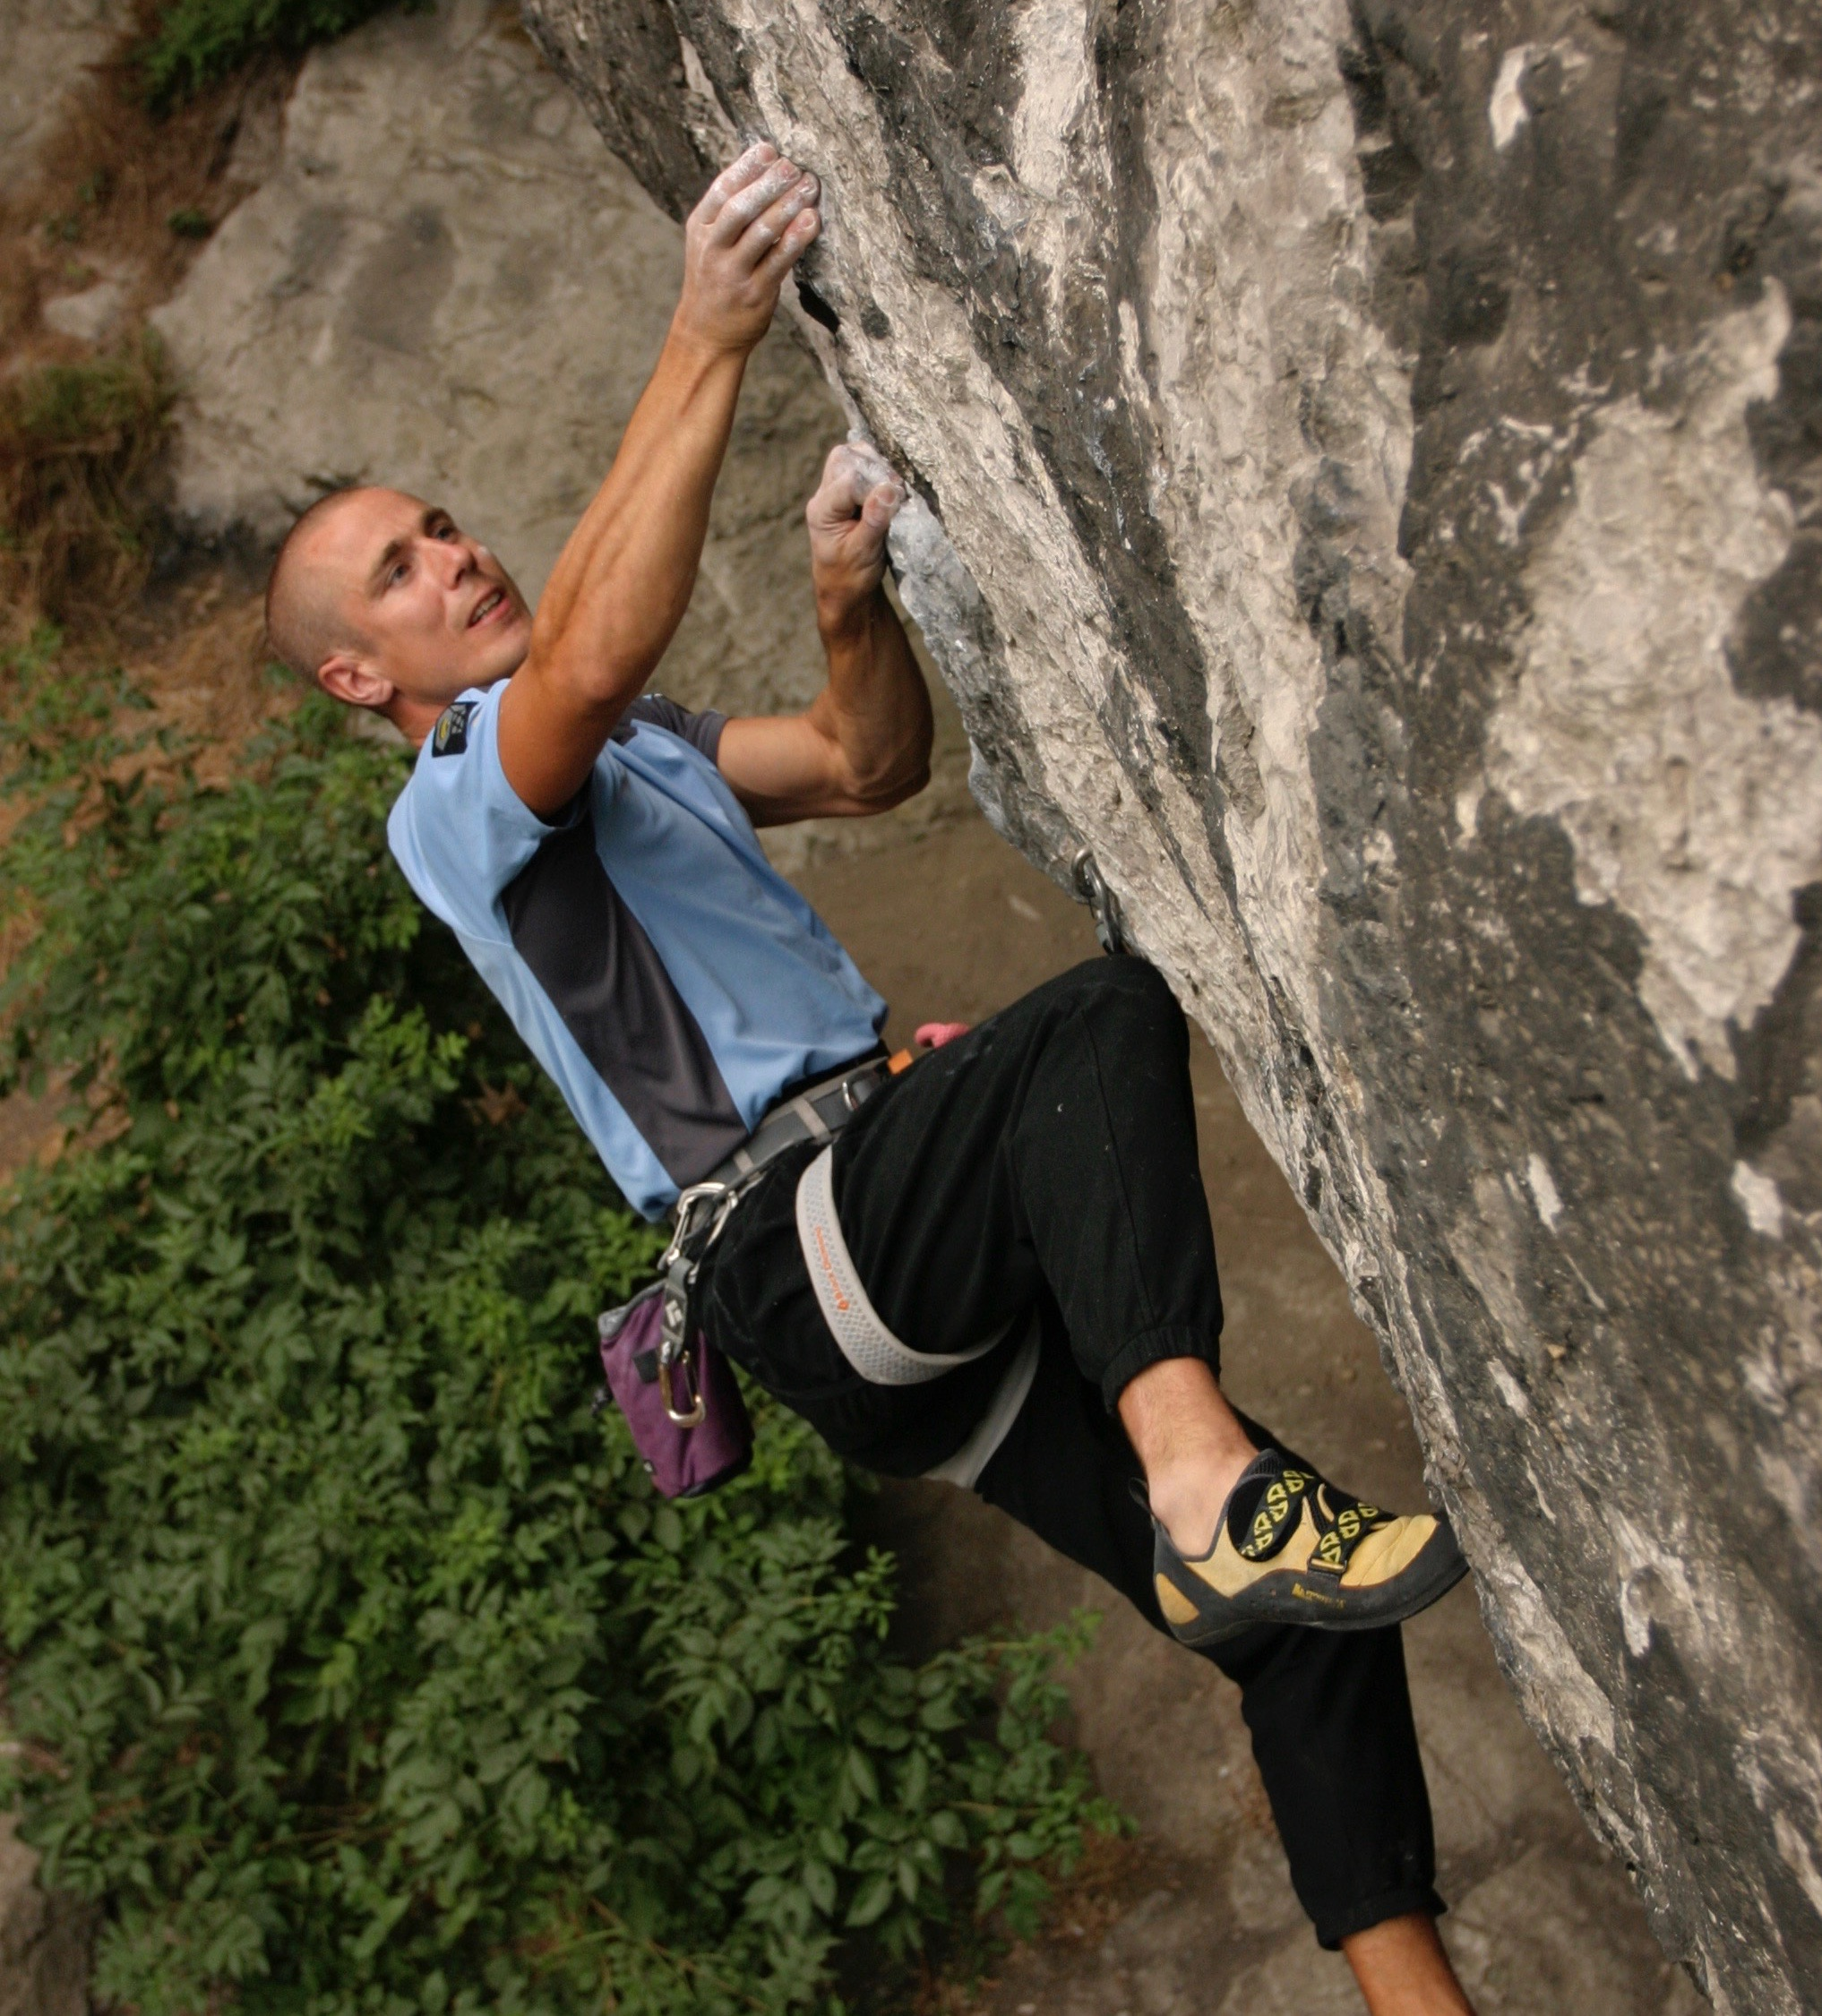 Photo: Neil on Chimes of Freedom 8a / Crux Films